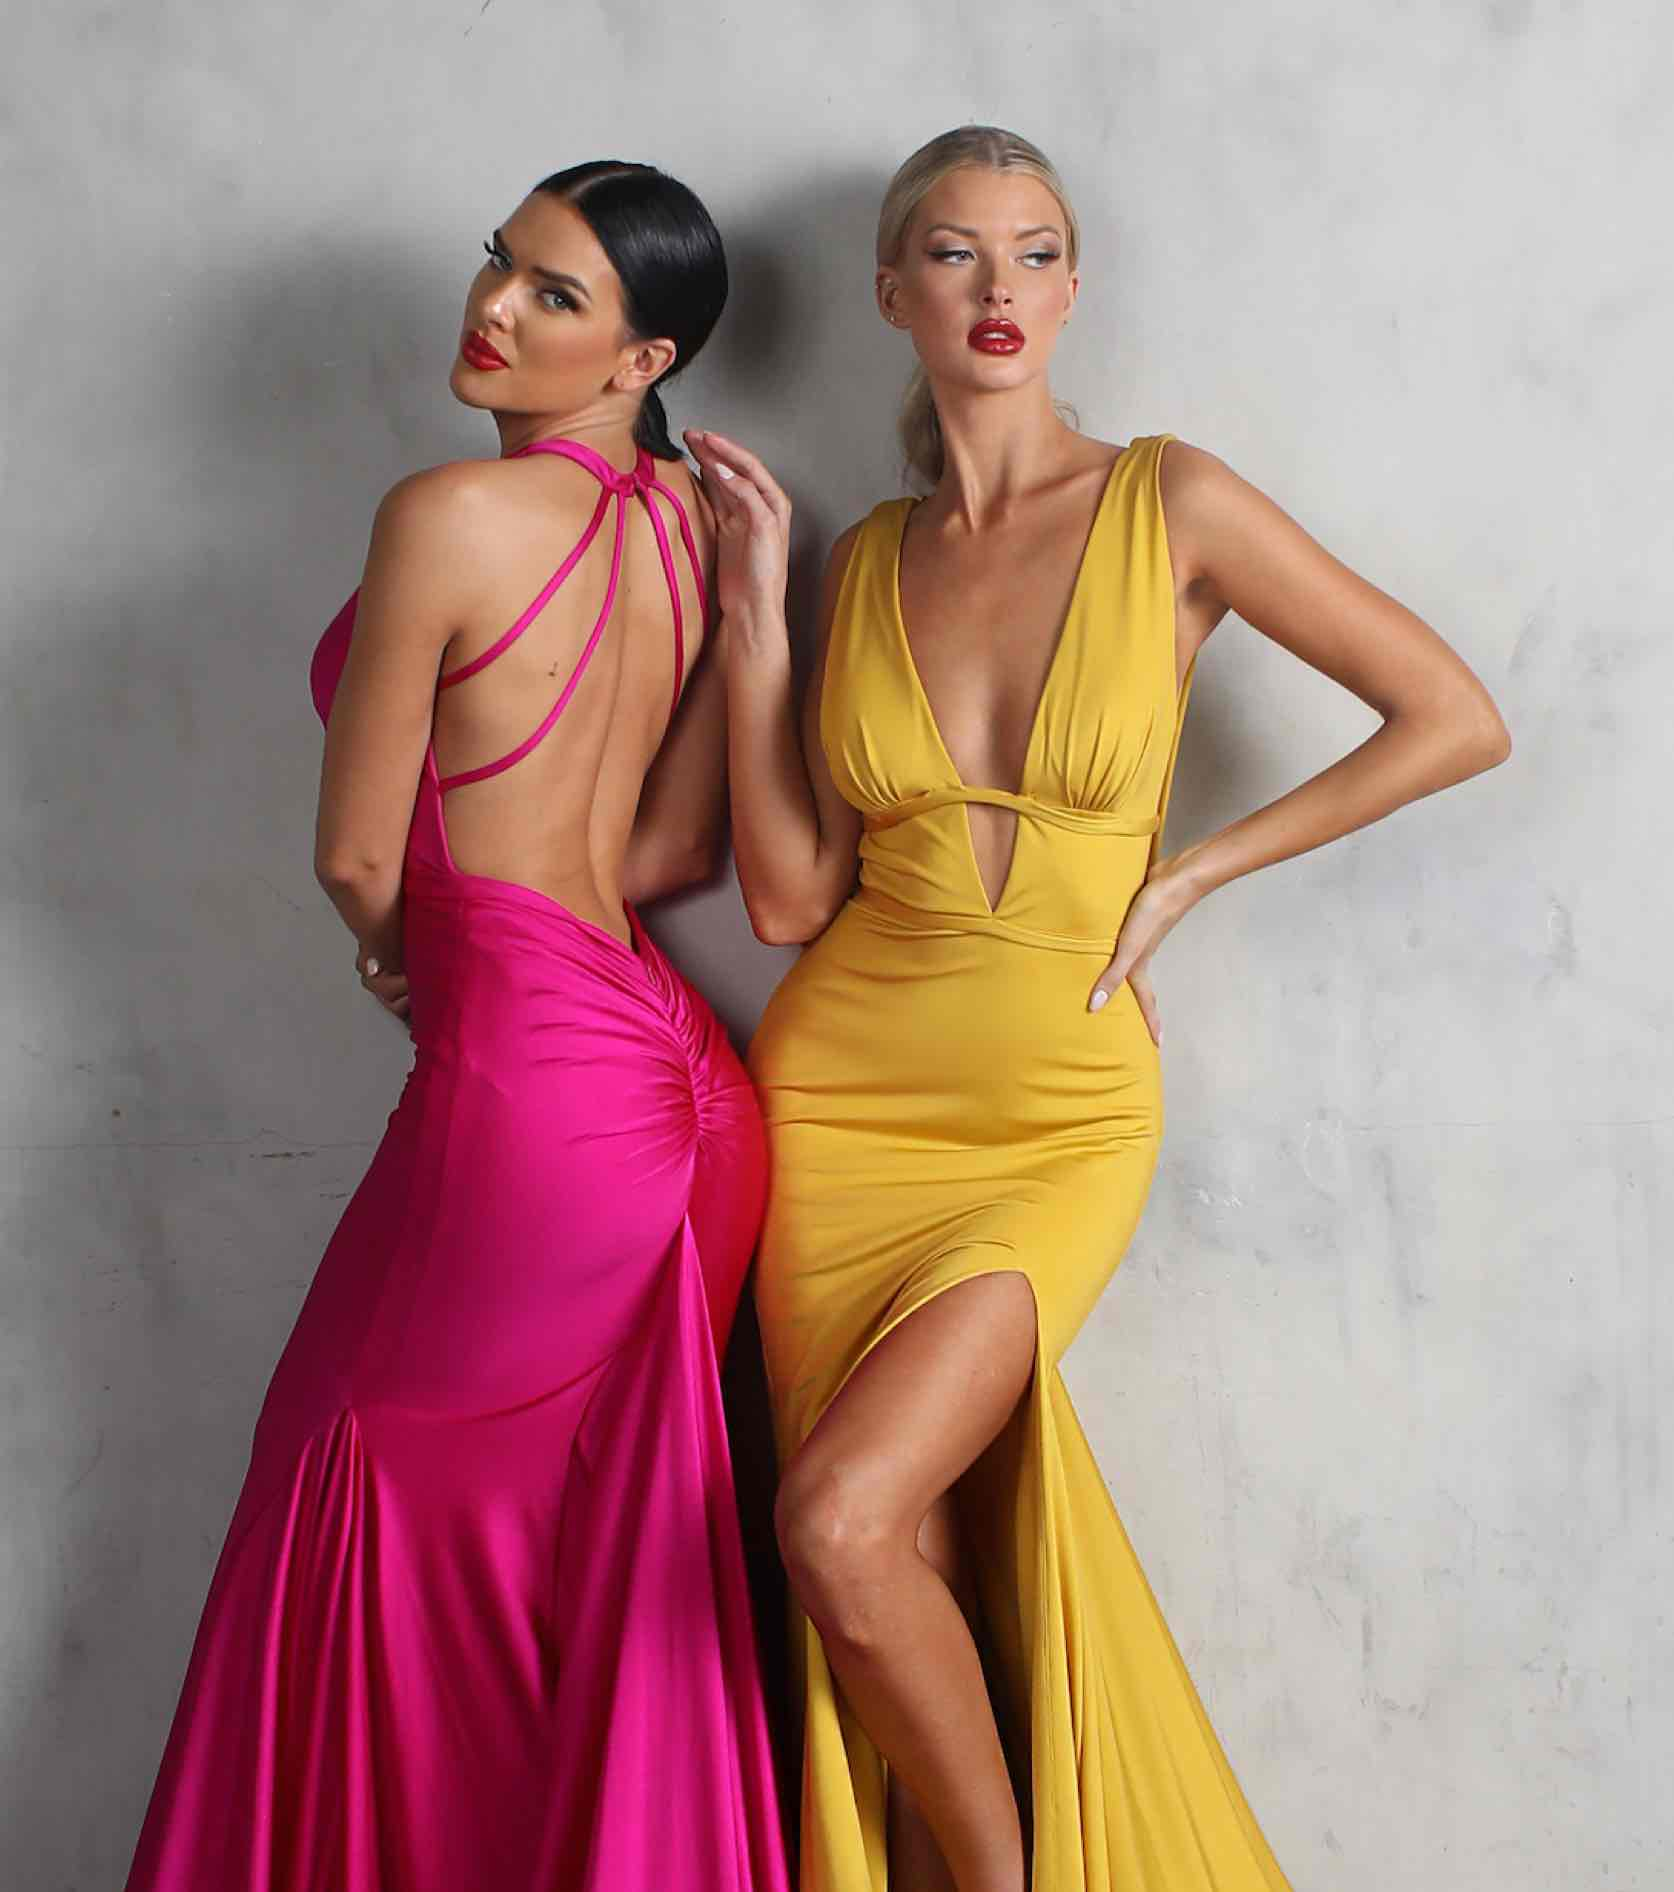 Models in pink and yellow Nicole Bakti dresses